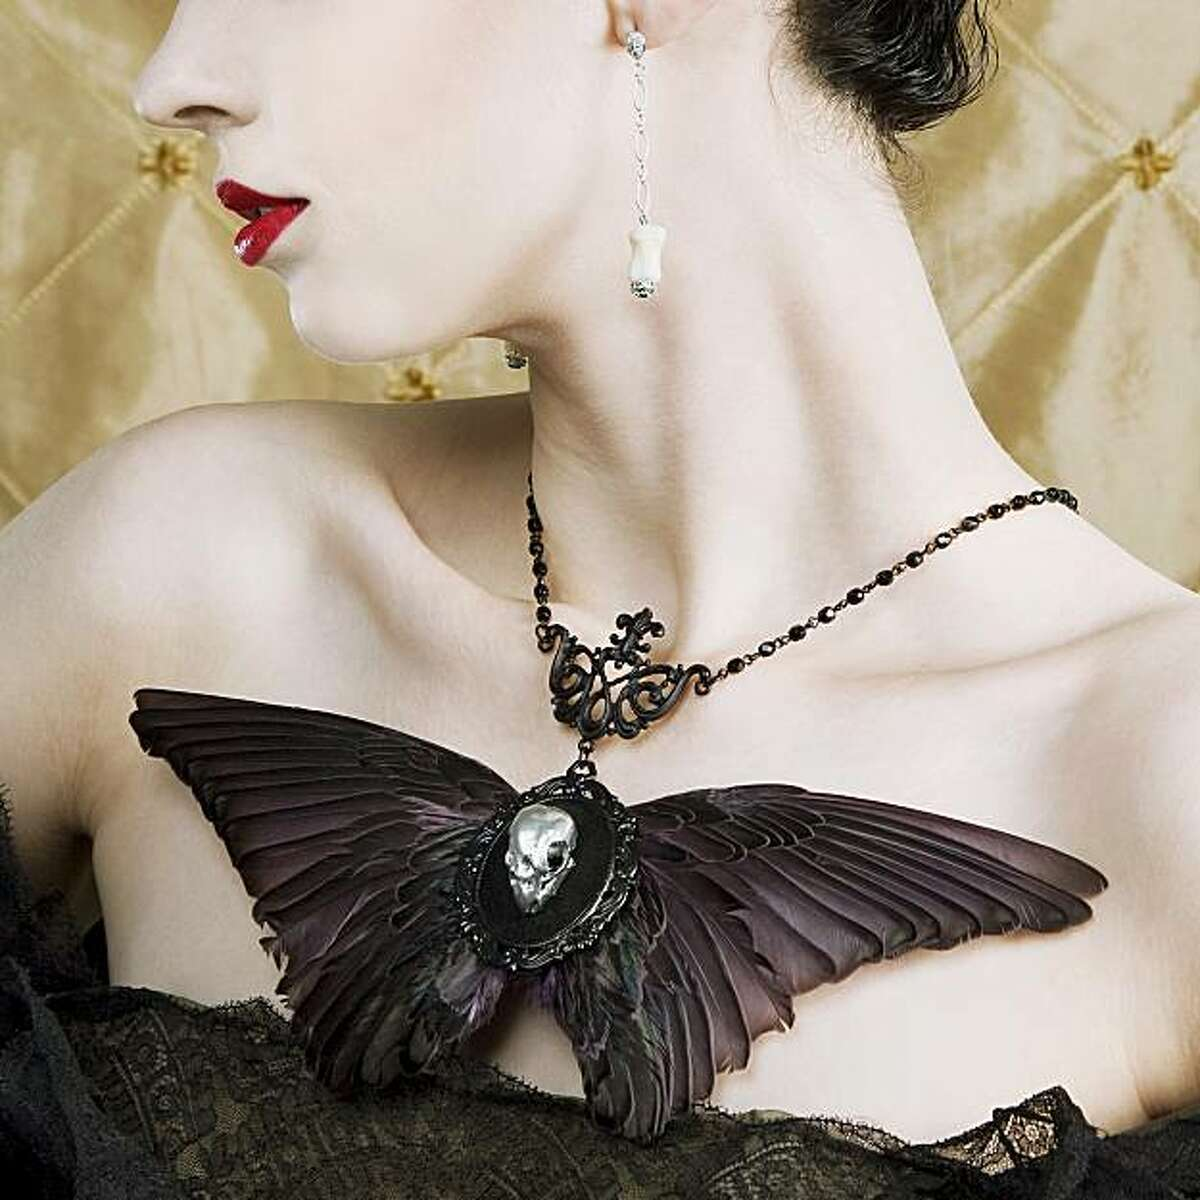 Loved to Death jewelery